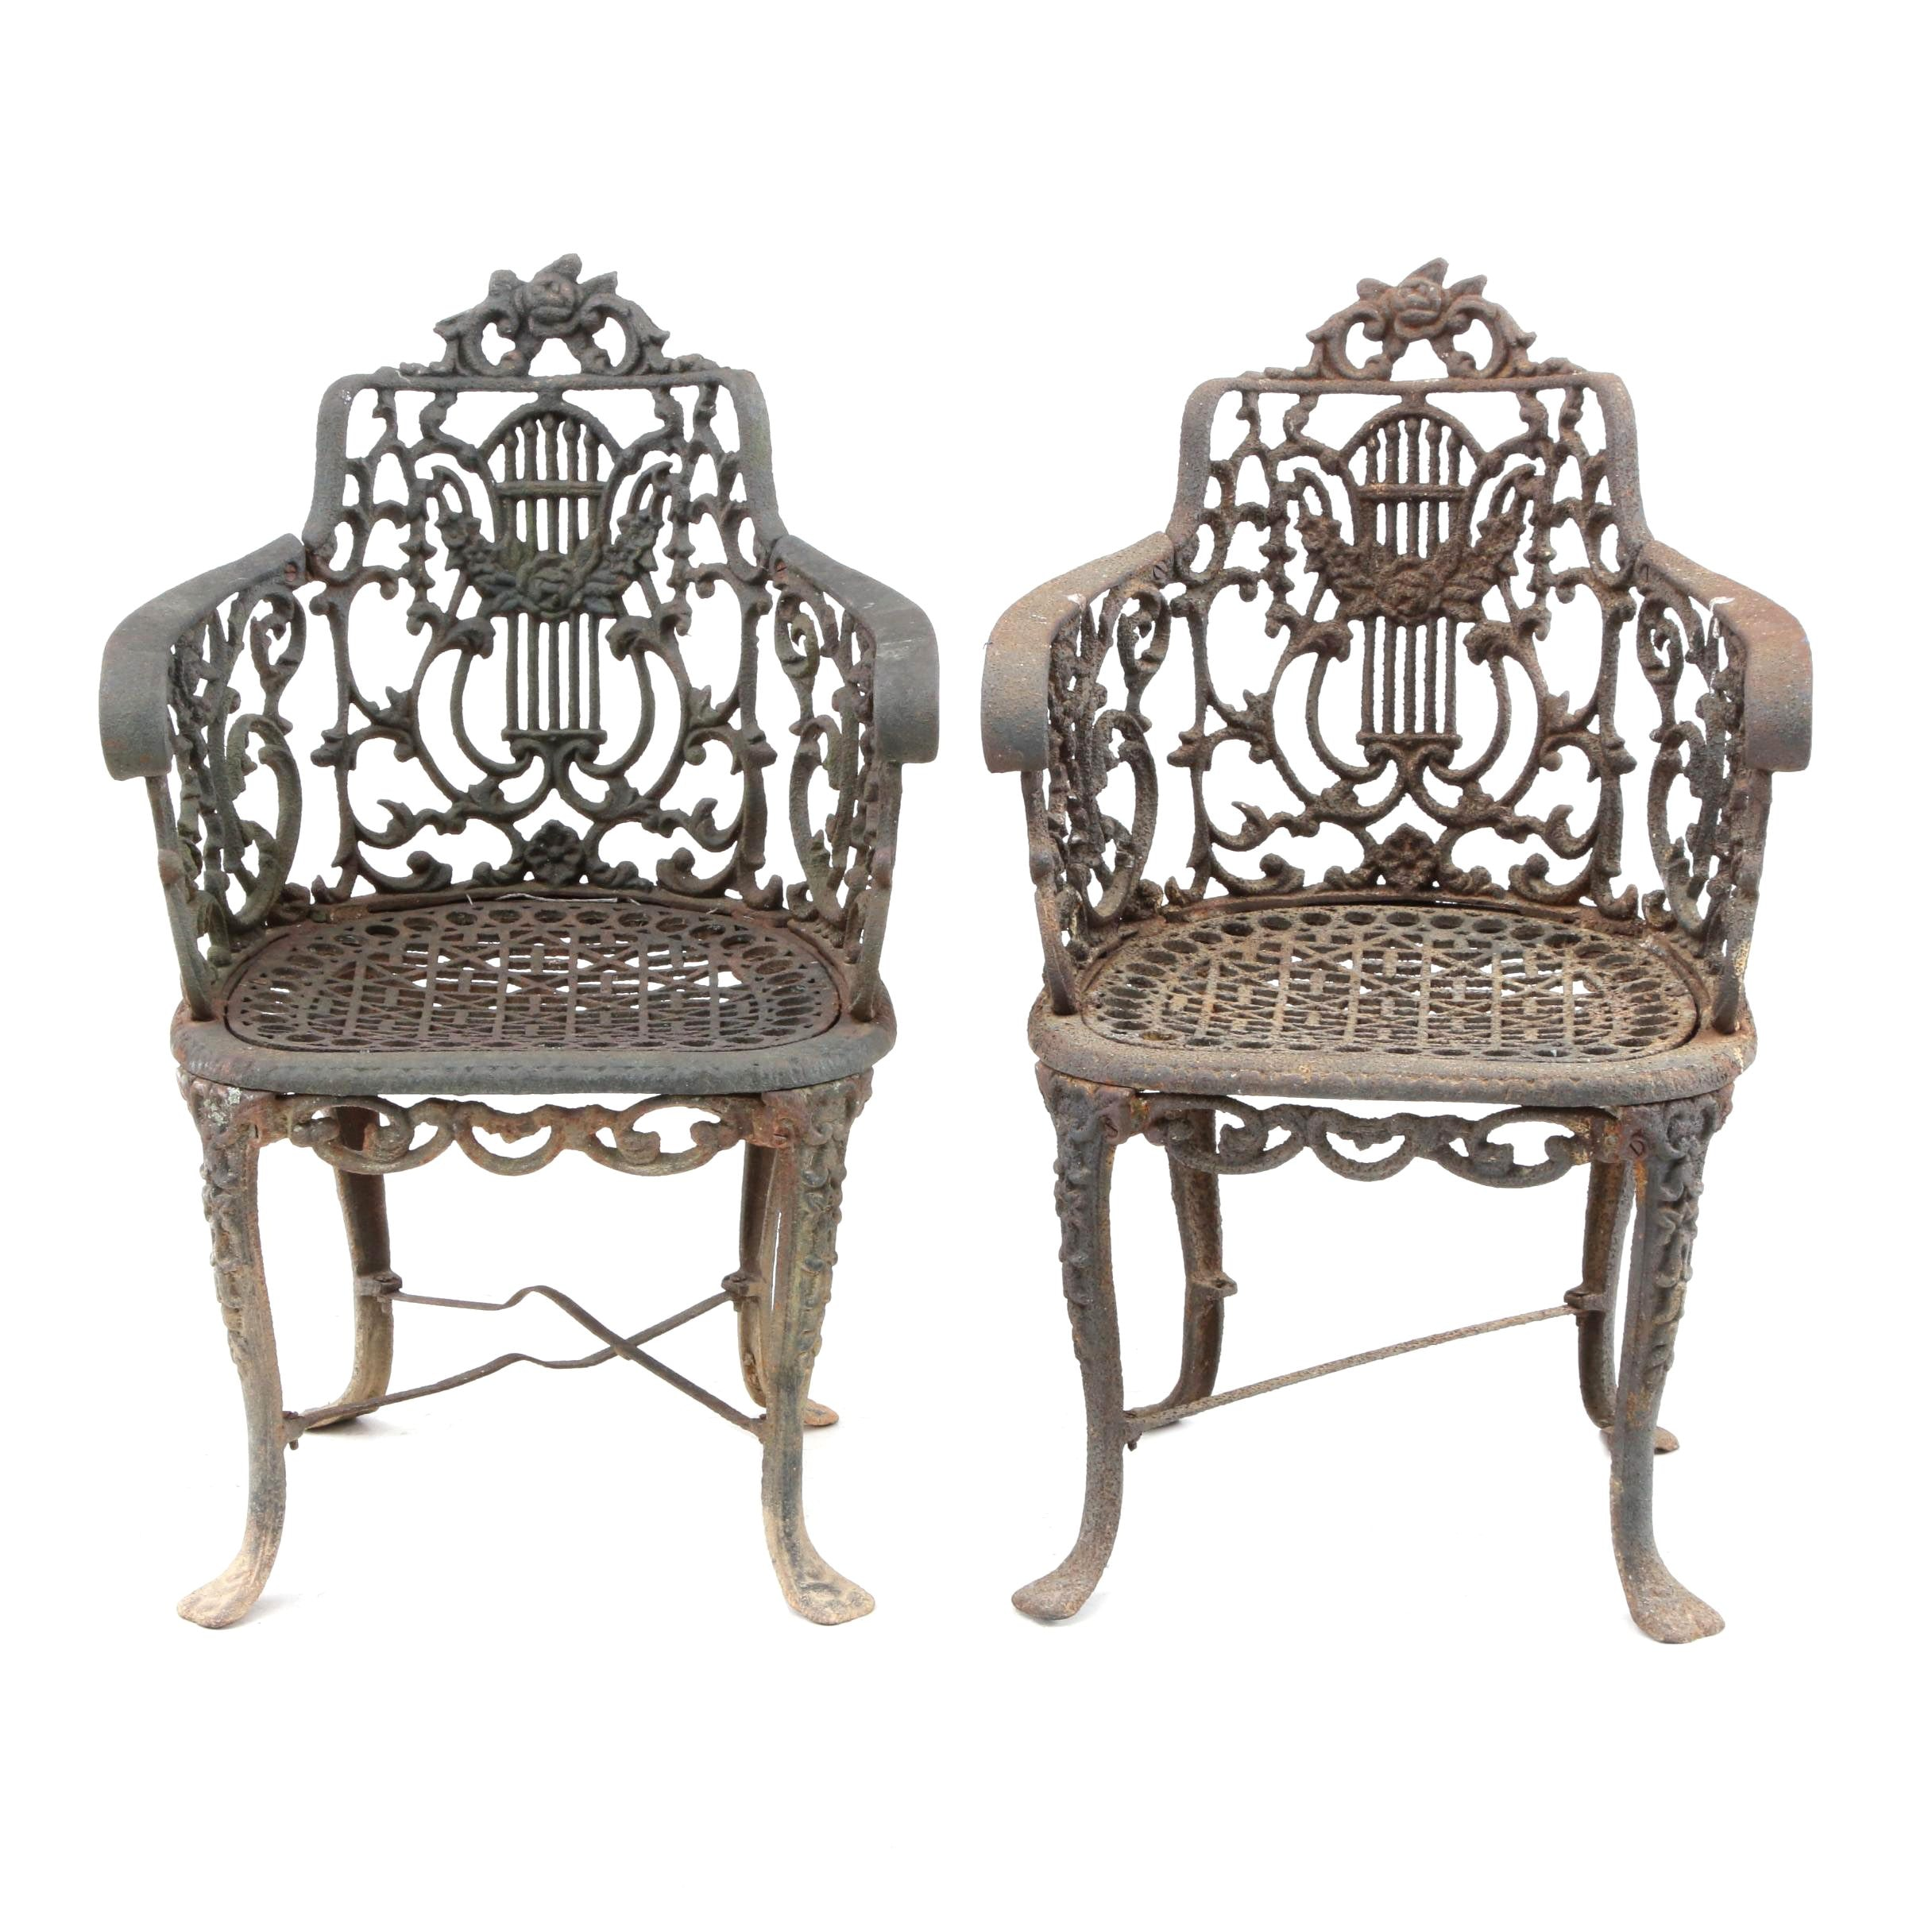 Victorian Cast Iron Garden Chairs, 19th Century